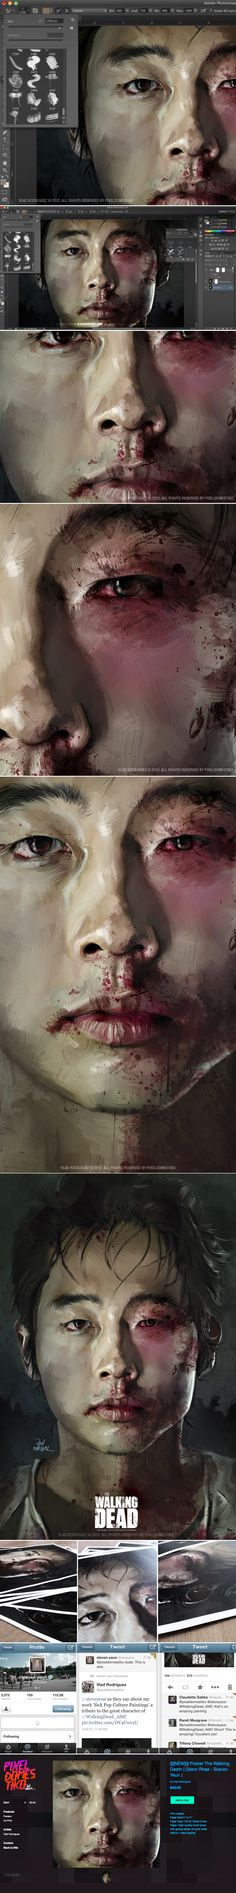 The Walking Dead (Glenn Rhee) by Vlad Rodriguez, via Behance